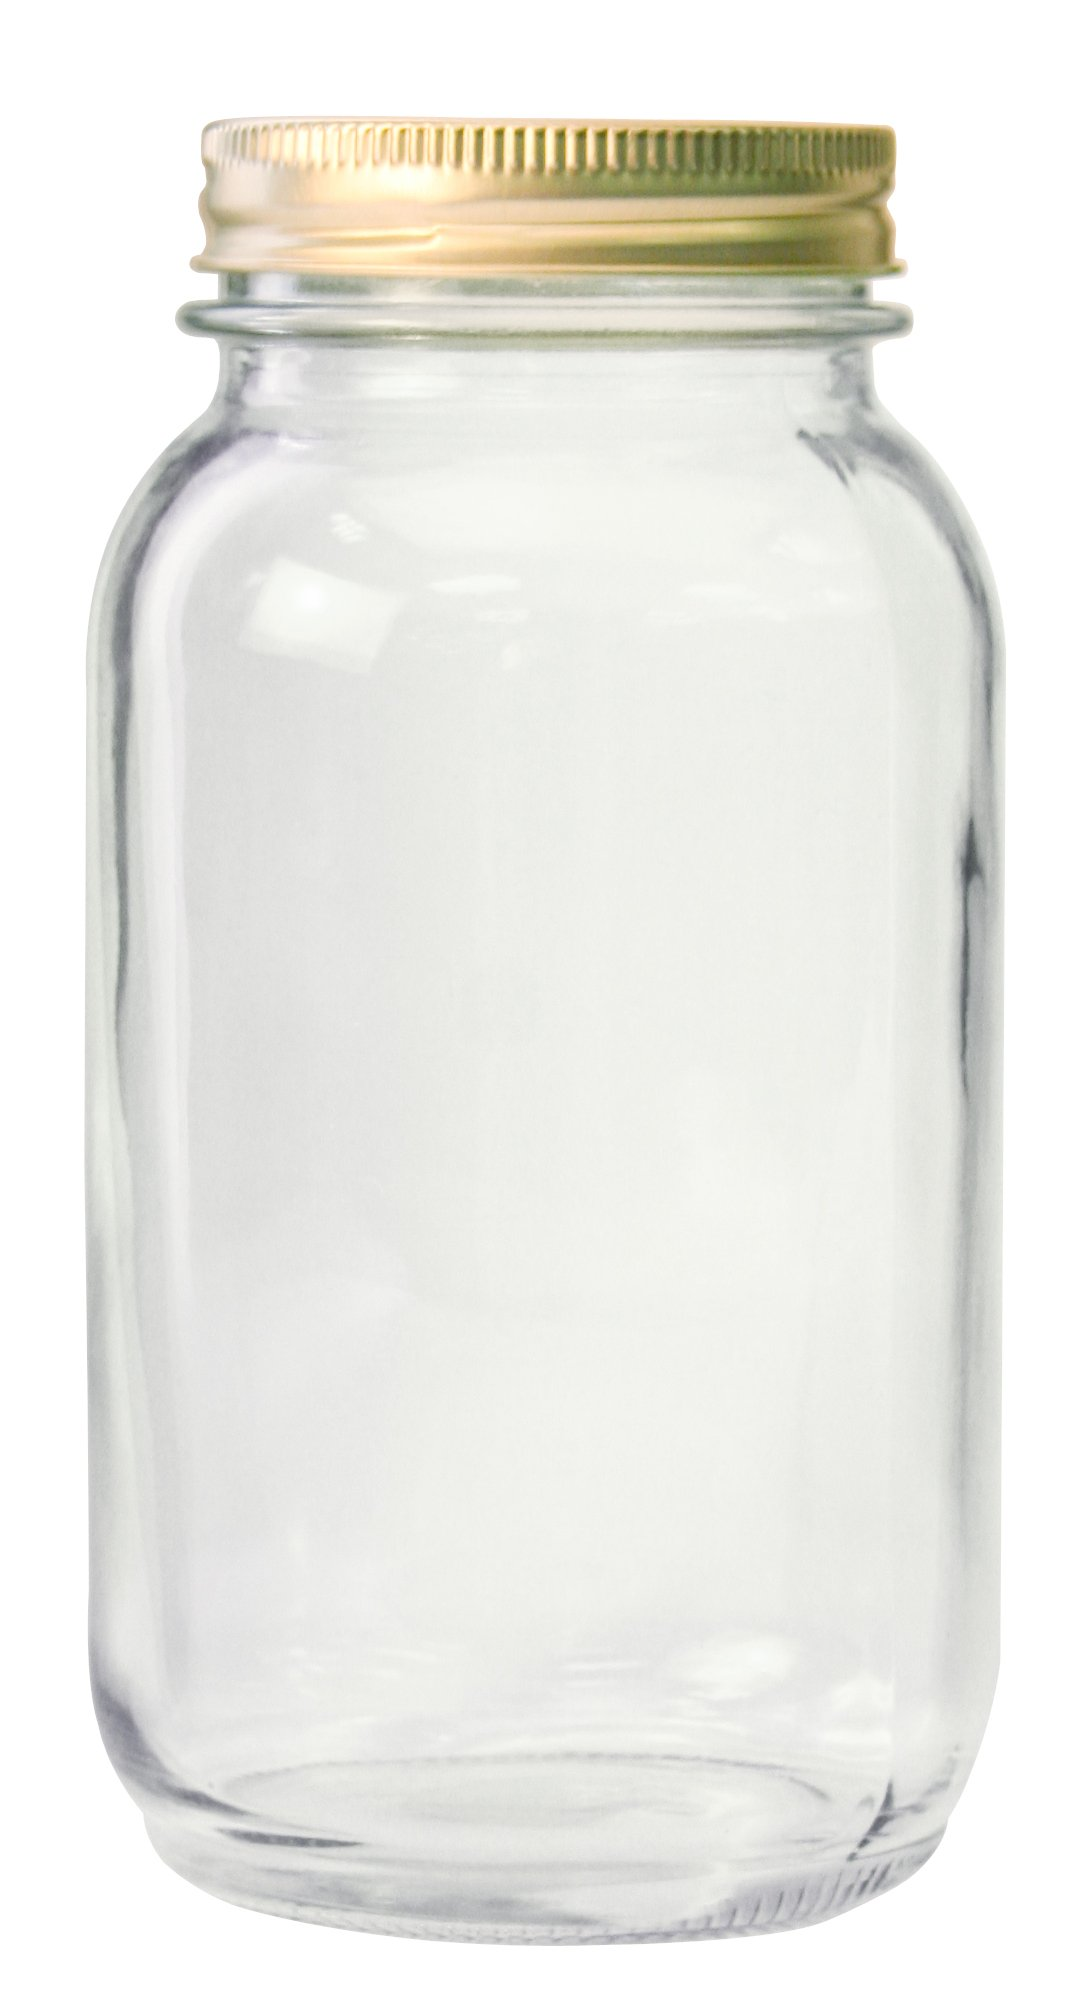 Anchor Hocking 1 quart Home Canning Jar with Metal Lids & Rings, Clear